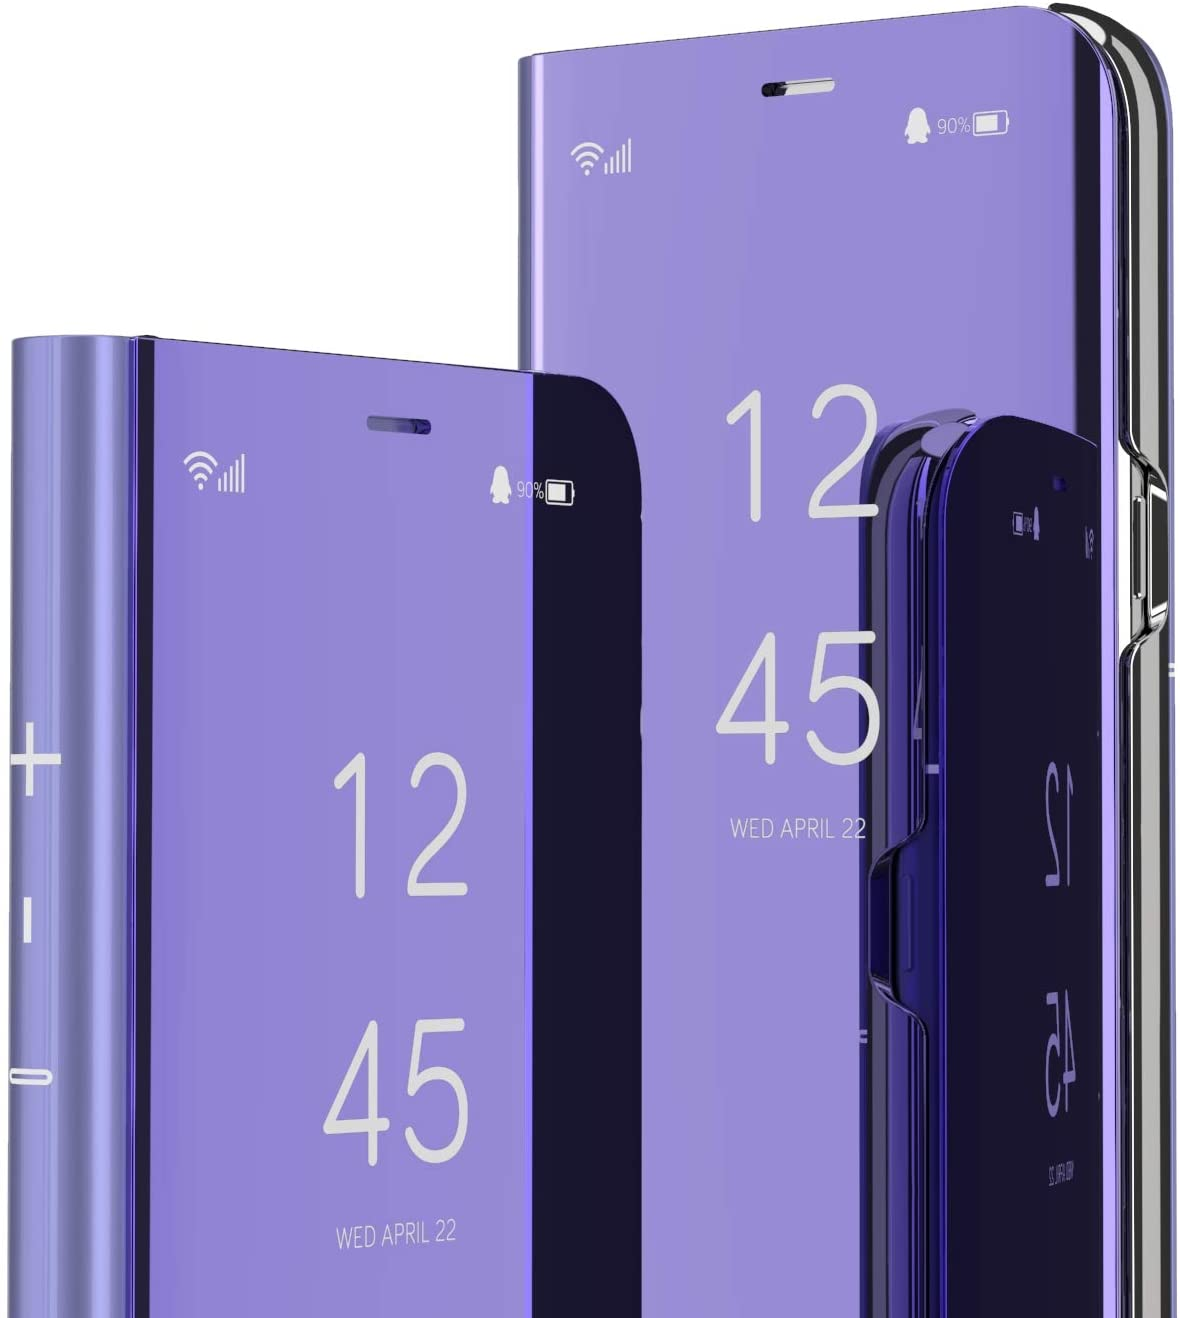 LEMAXELERS Samsung Galaxy S21 Ultra Case Slim Mirror Design Clear View Flip Bookstyle Ultra Slim Protecter Shell with Kickstand Protective Cover for Samsung Galaxy S21 Ultra Mirror PU PU Purple